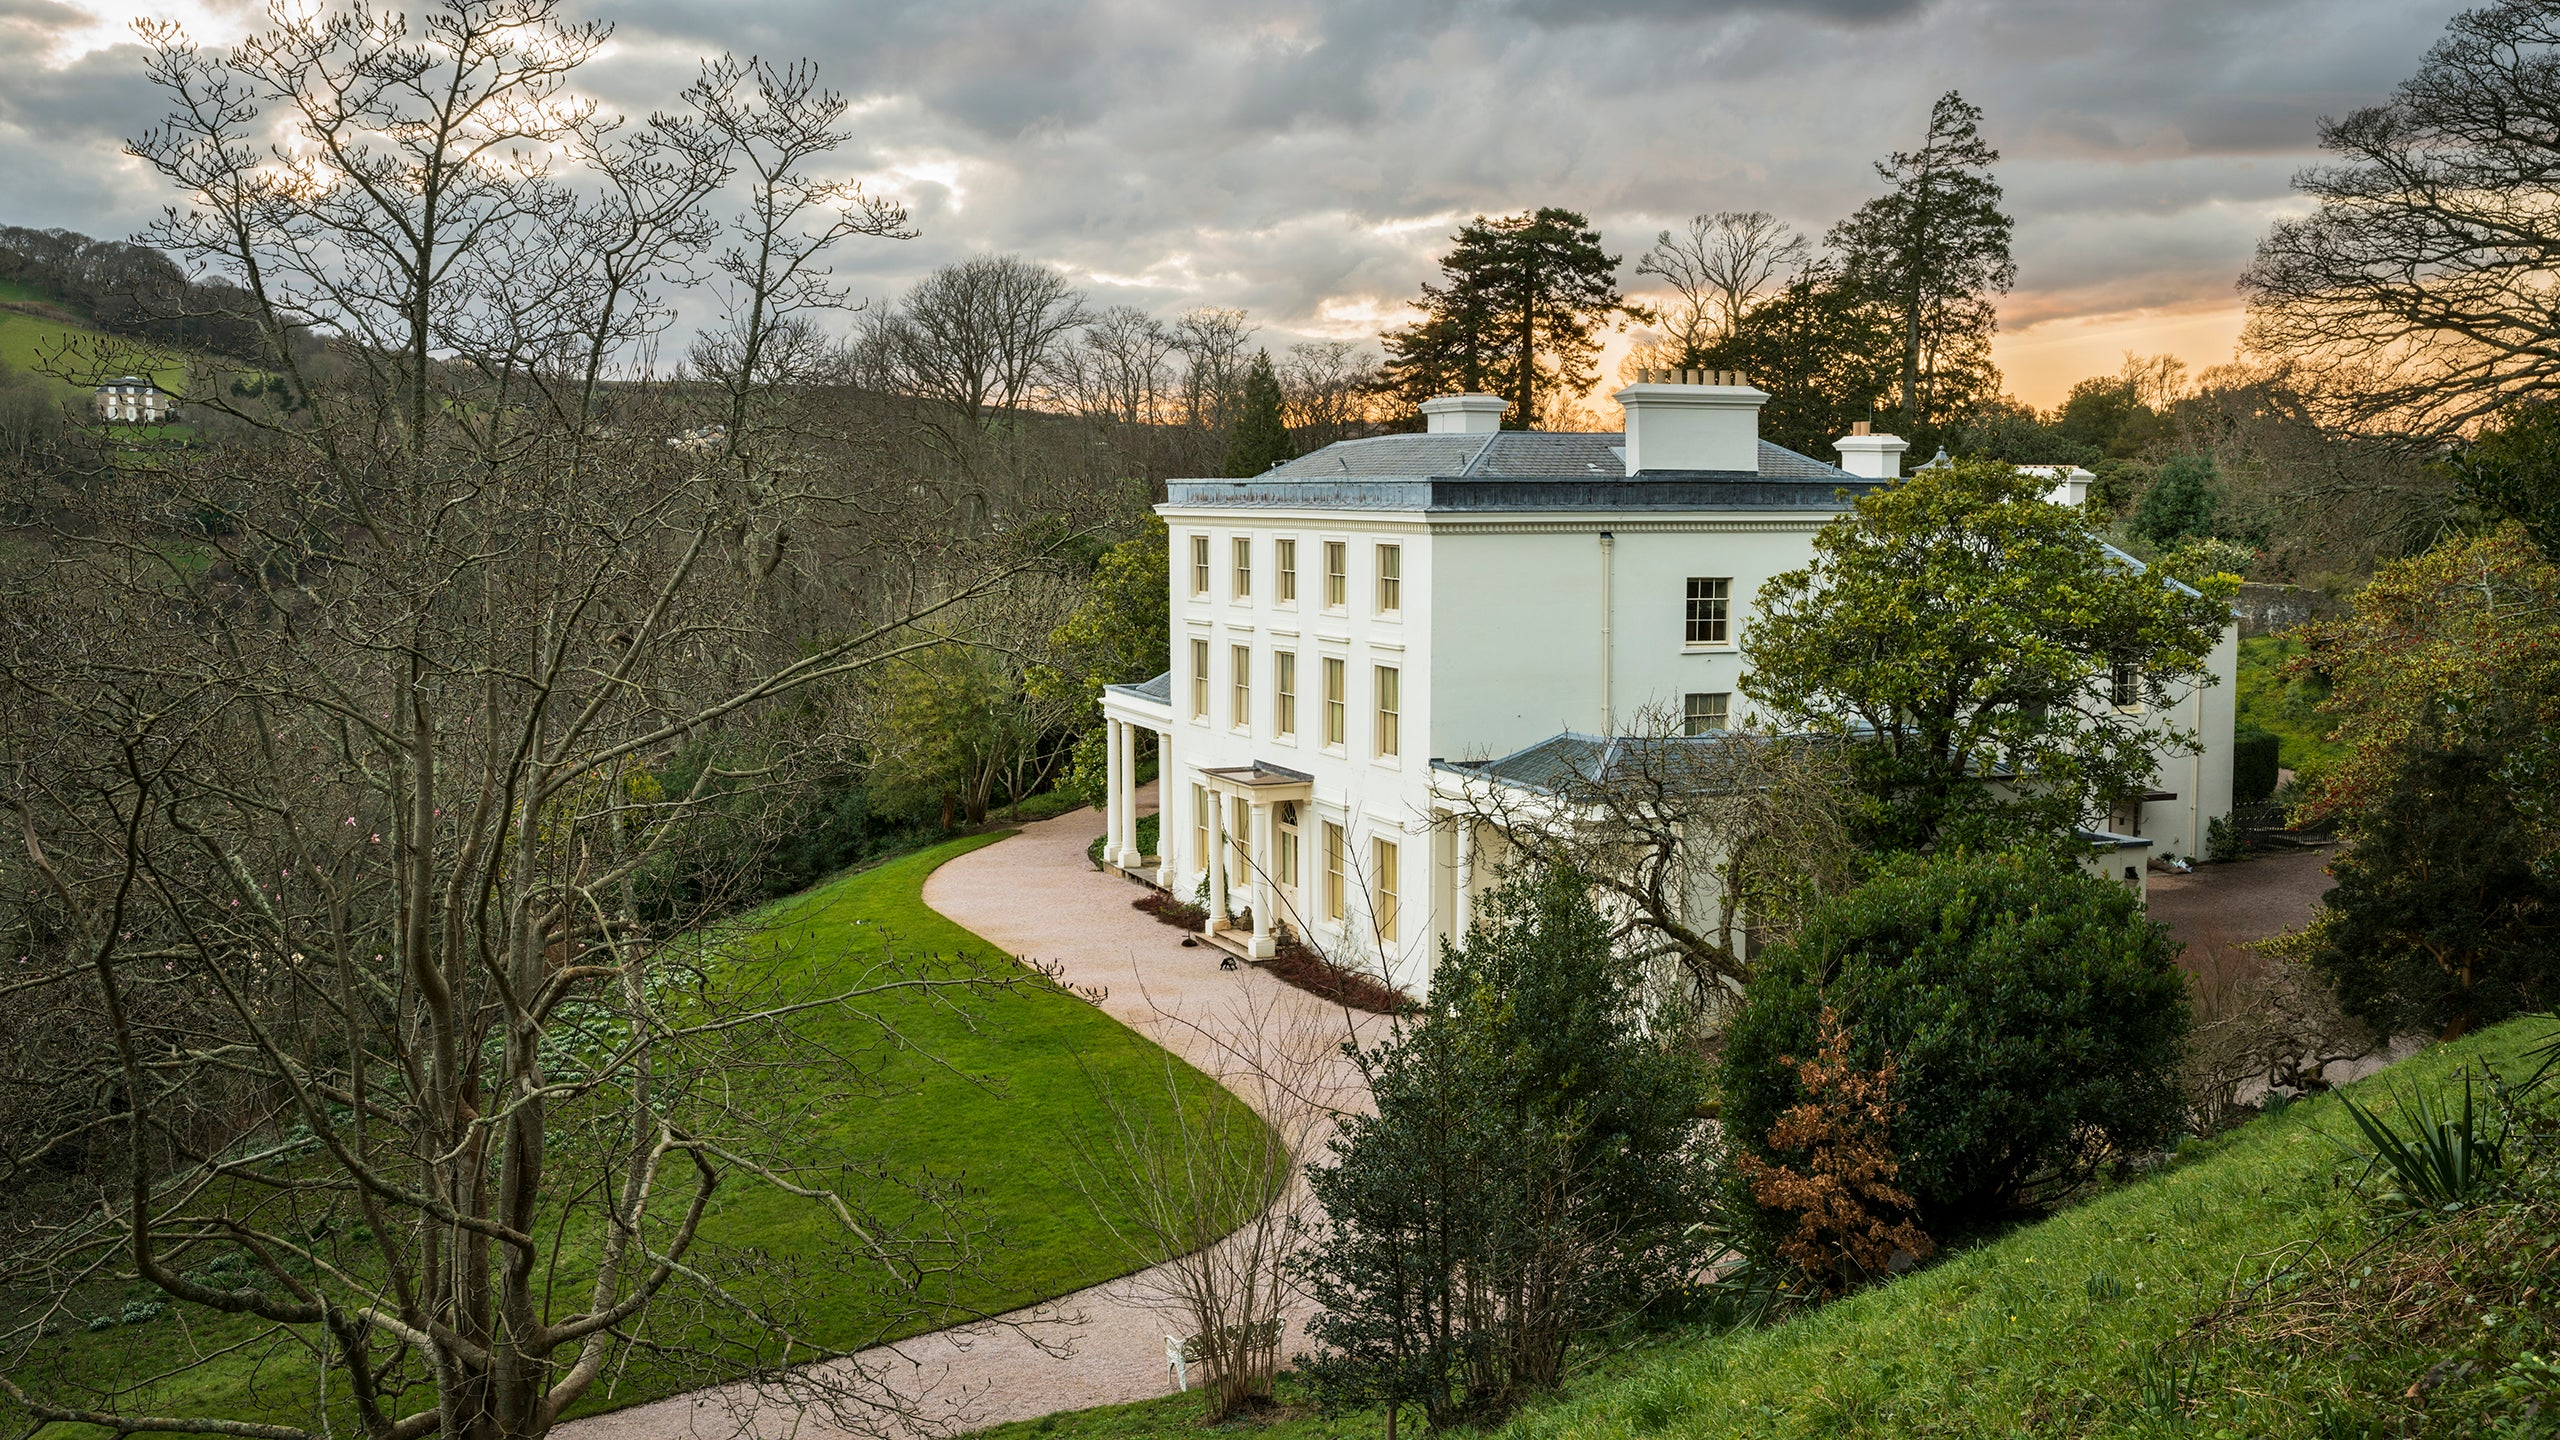 View of the House with the River Dart below at Greenway Devon